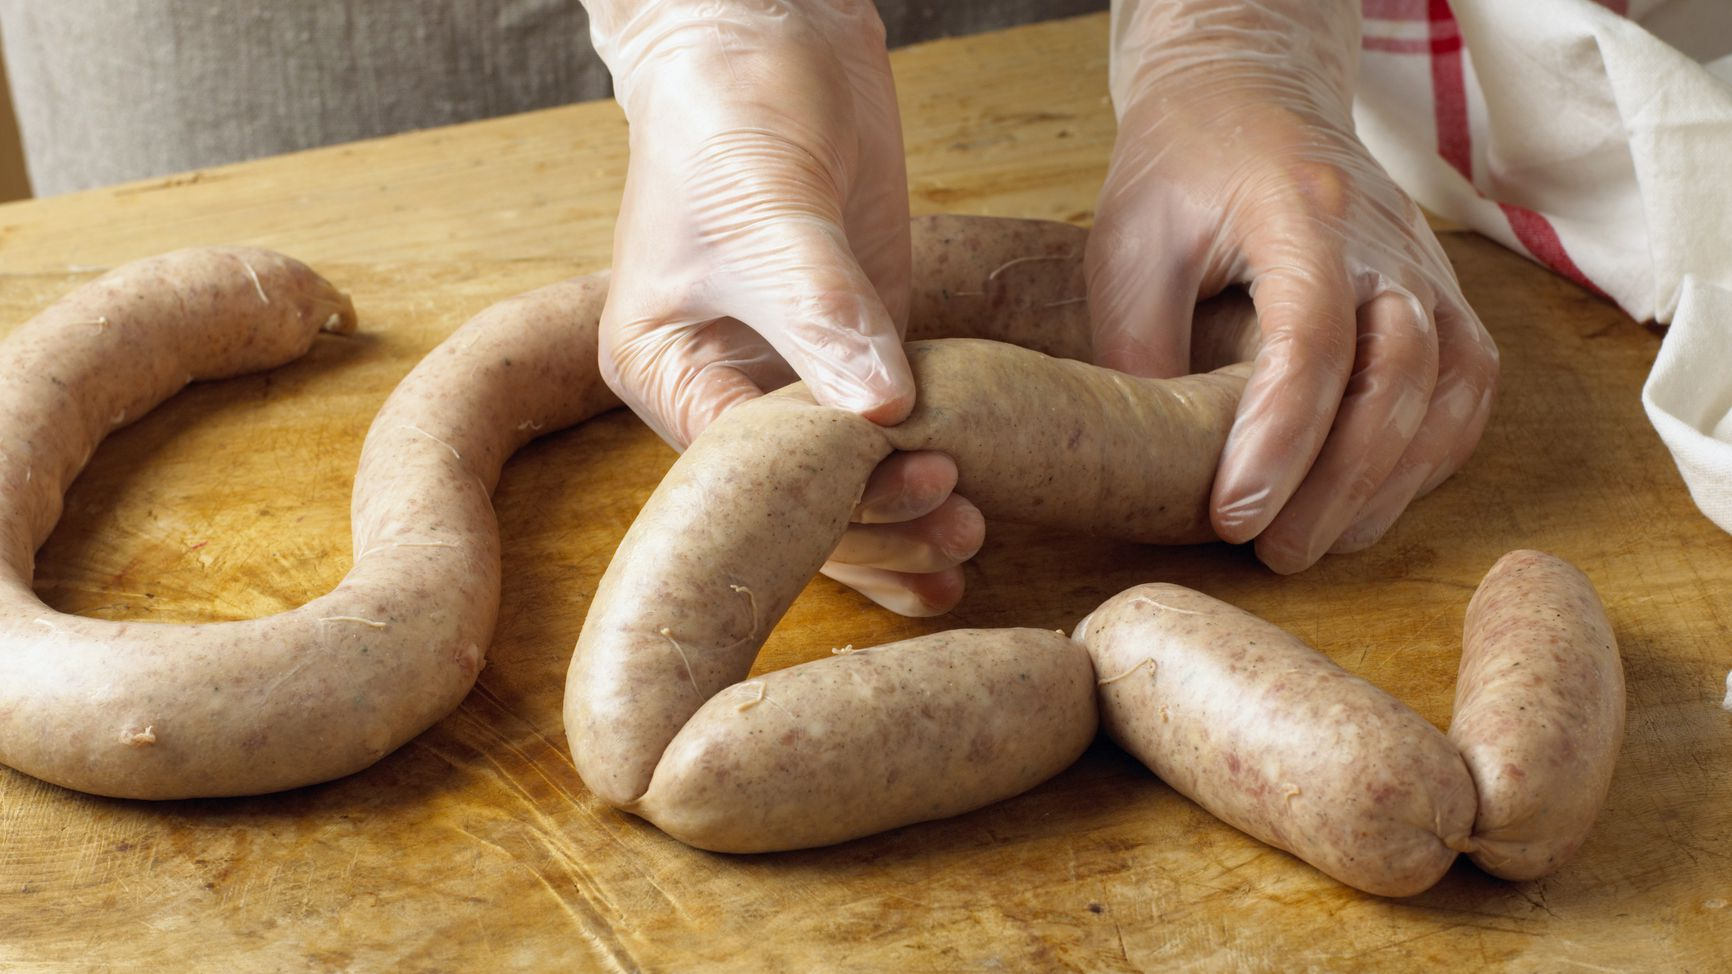 Instructions for Sausage-Making at Home